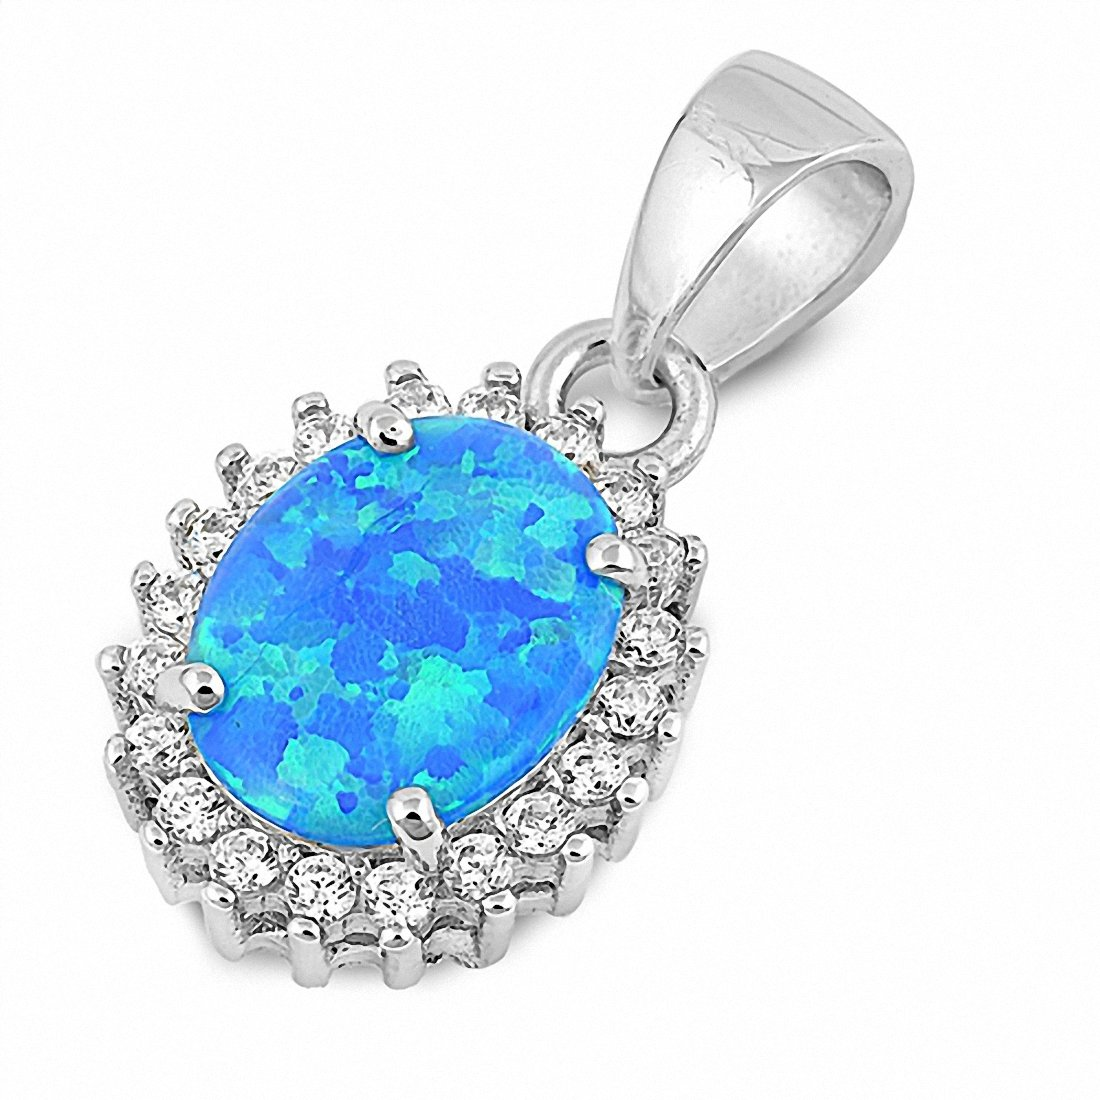 Halo Pendant Oval Created Opal Round Cubic Zirconia 925 Sterling Silver Choose Color